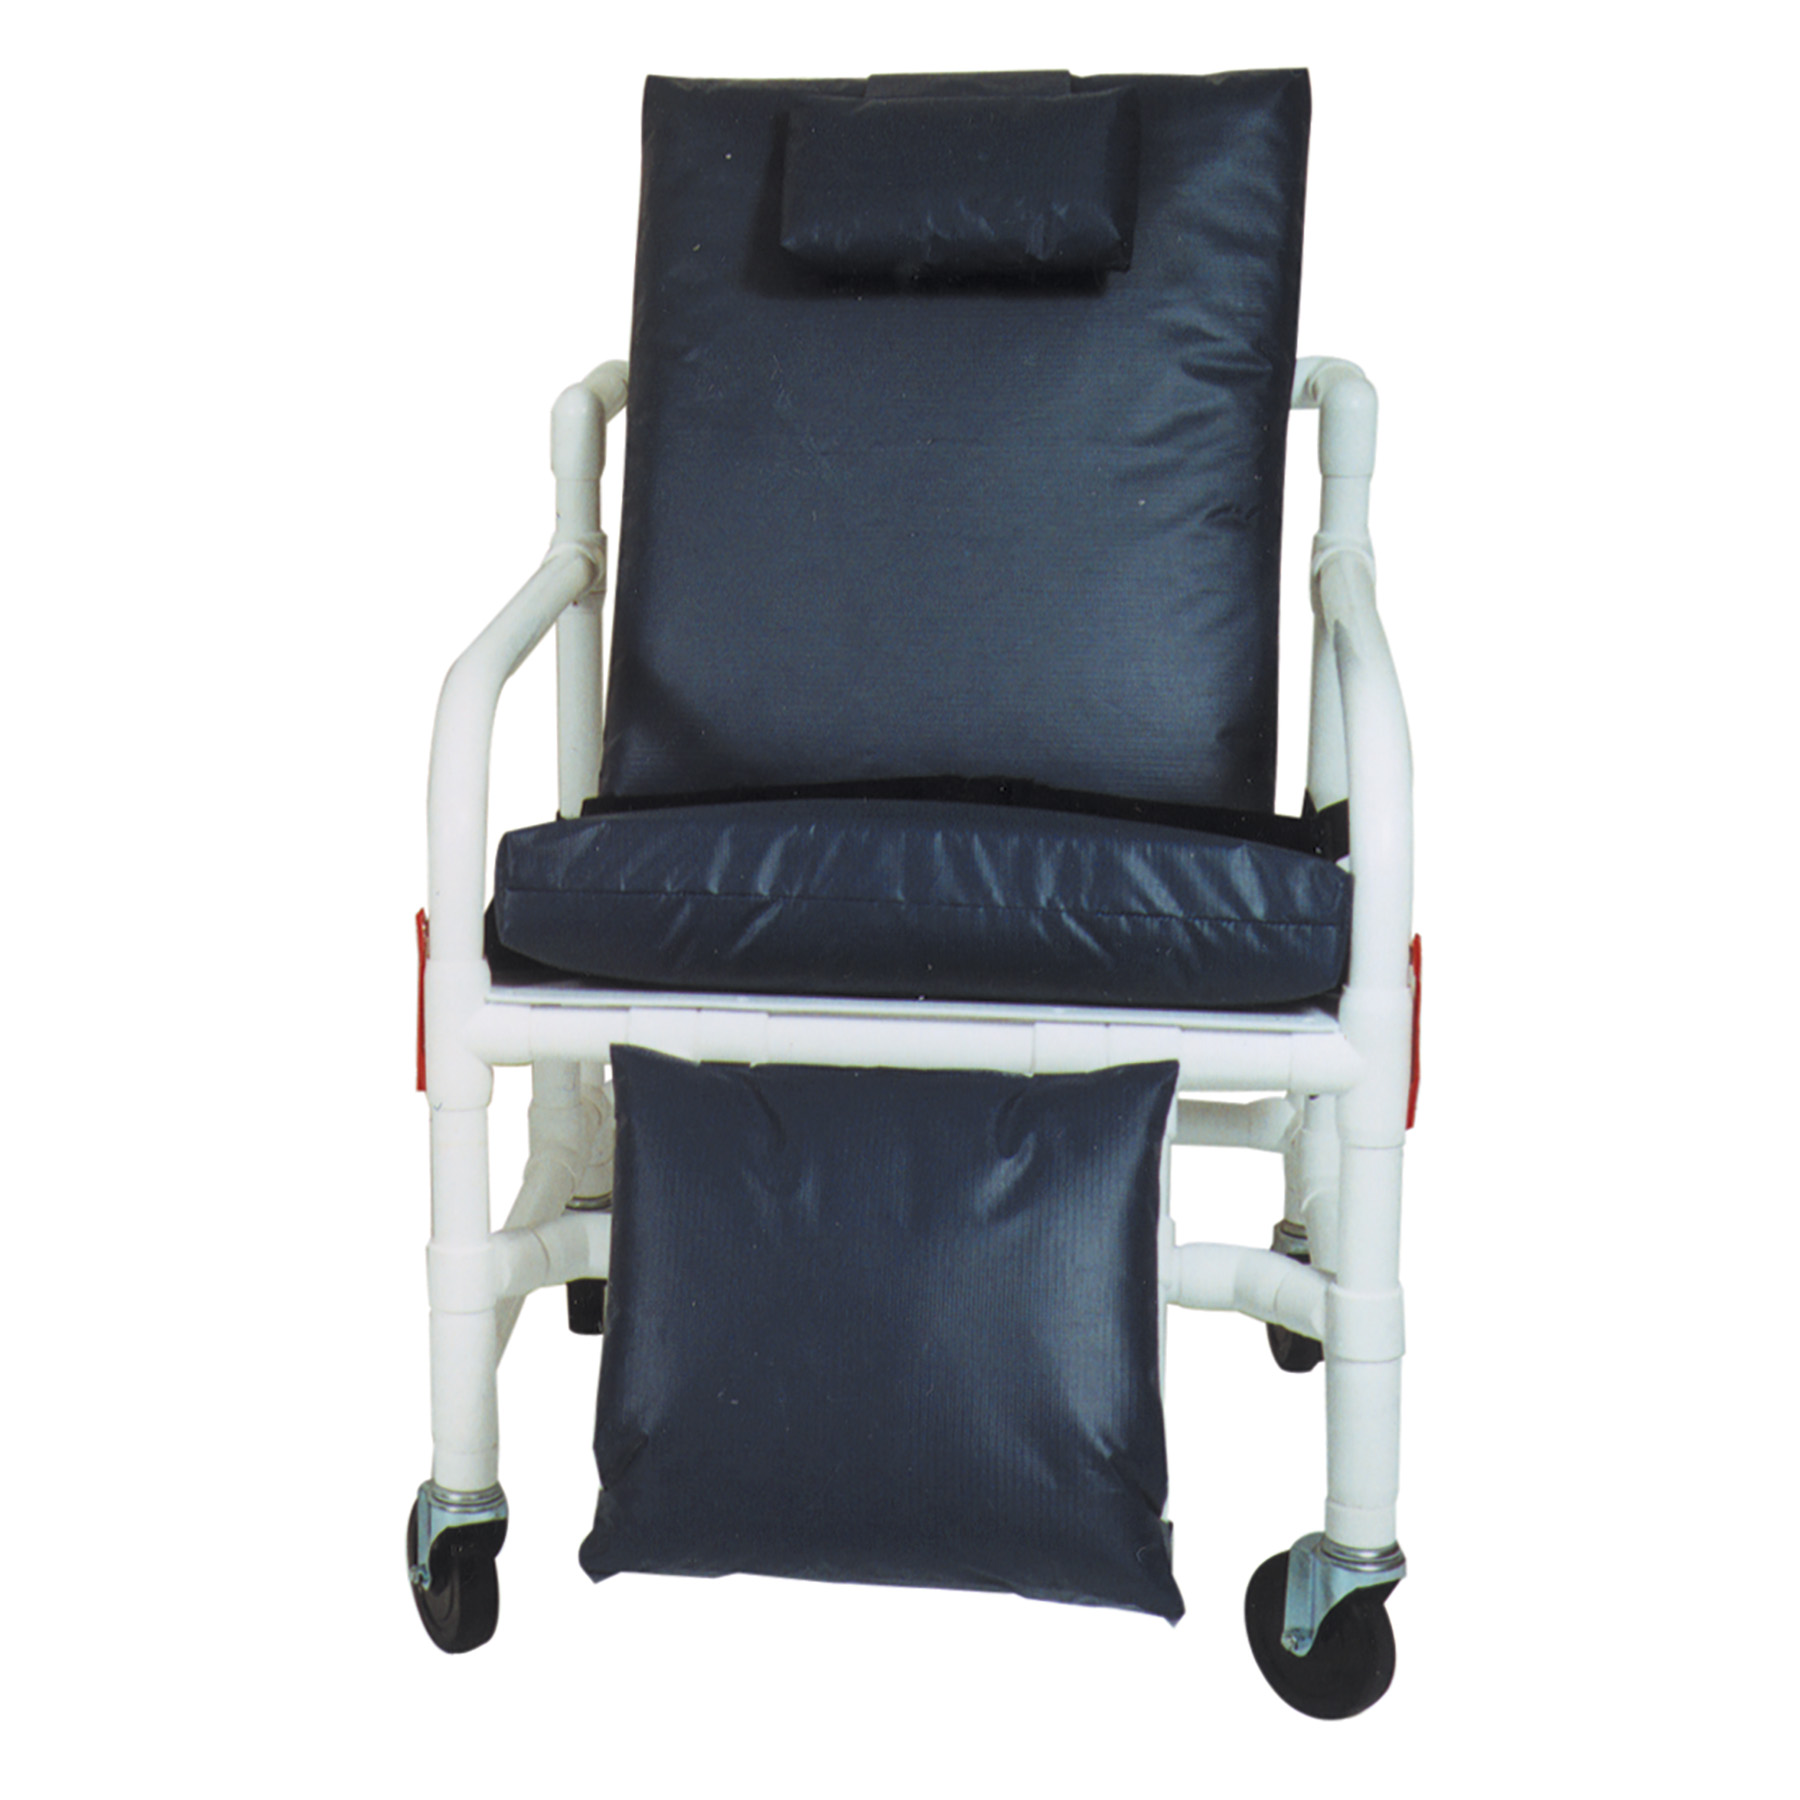 Outstanding Model 530 S Bariatric Geri Chair Beatyapartments Chair Design Images Beatyapartmentscom